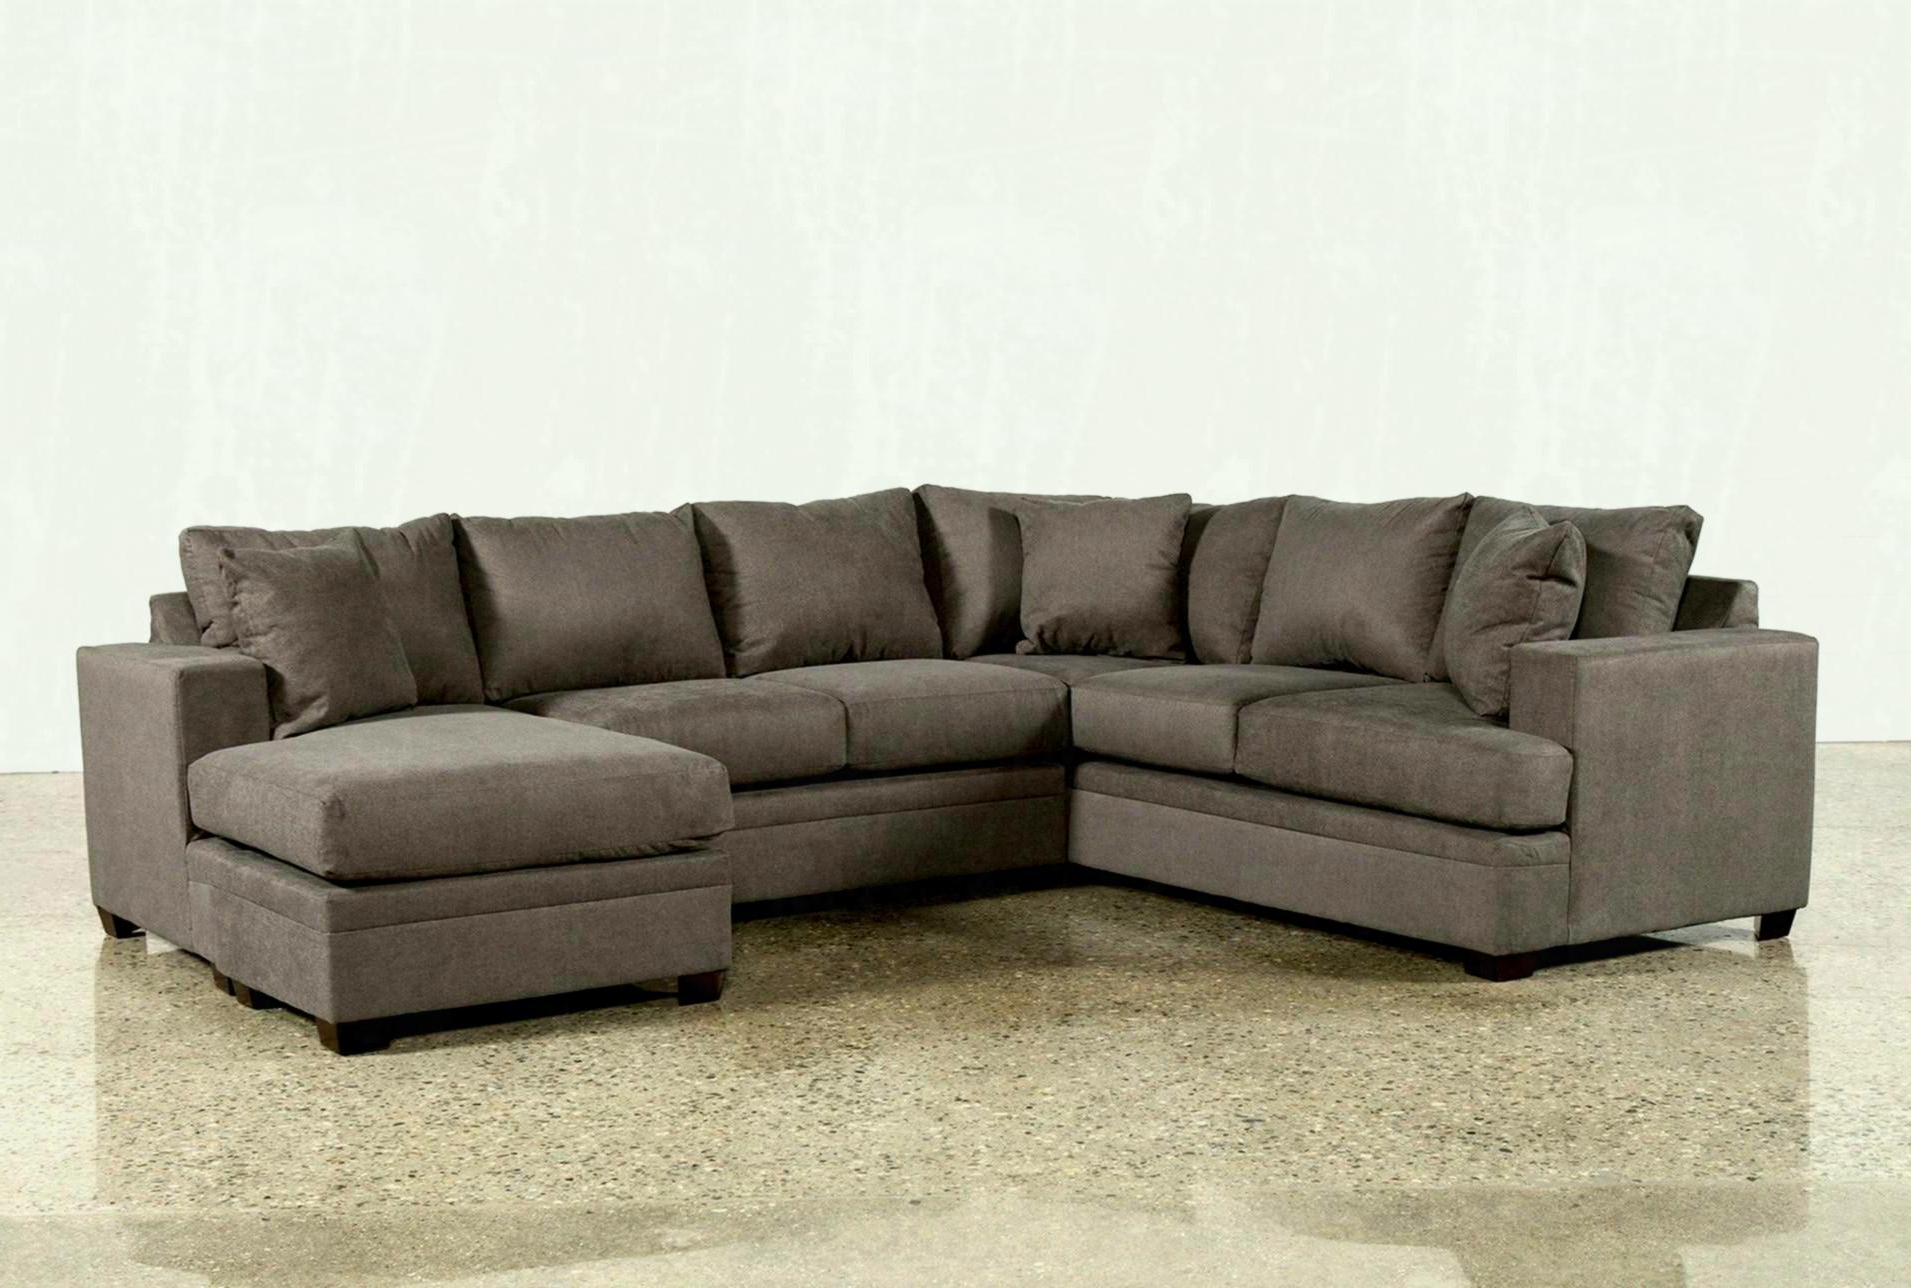 Added To Cart Kerri Piece Sectional W Raf Chaise Living Spaces In Newest Lucy Dark Grey 2 Piece Sectionals With Raf Chaise (View 1 of 20)